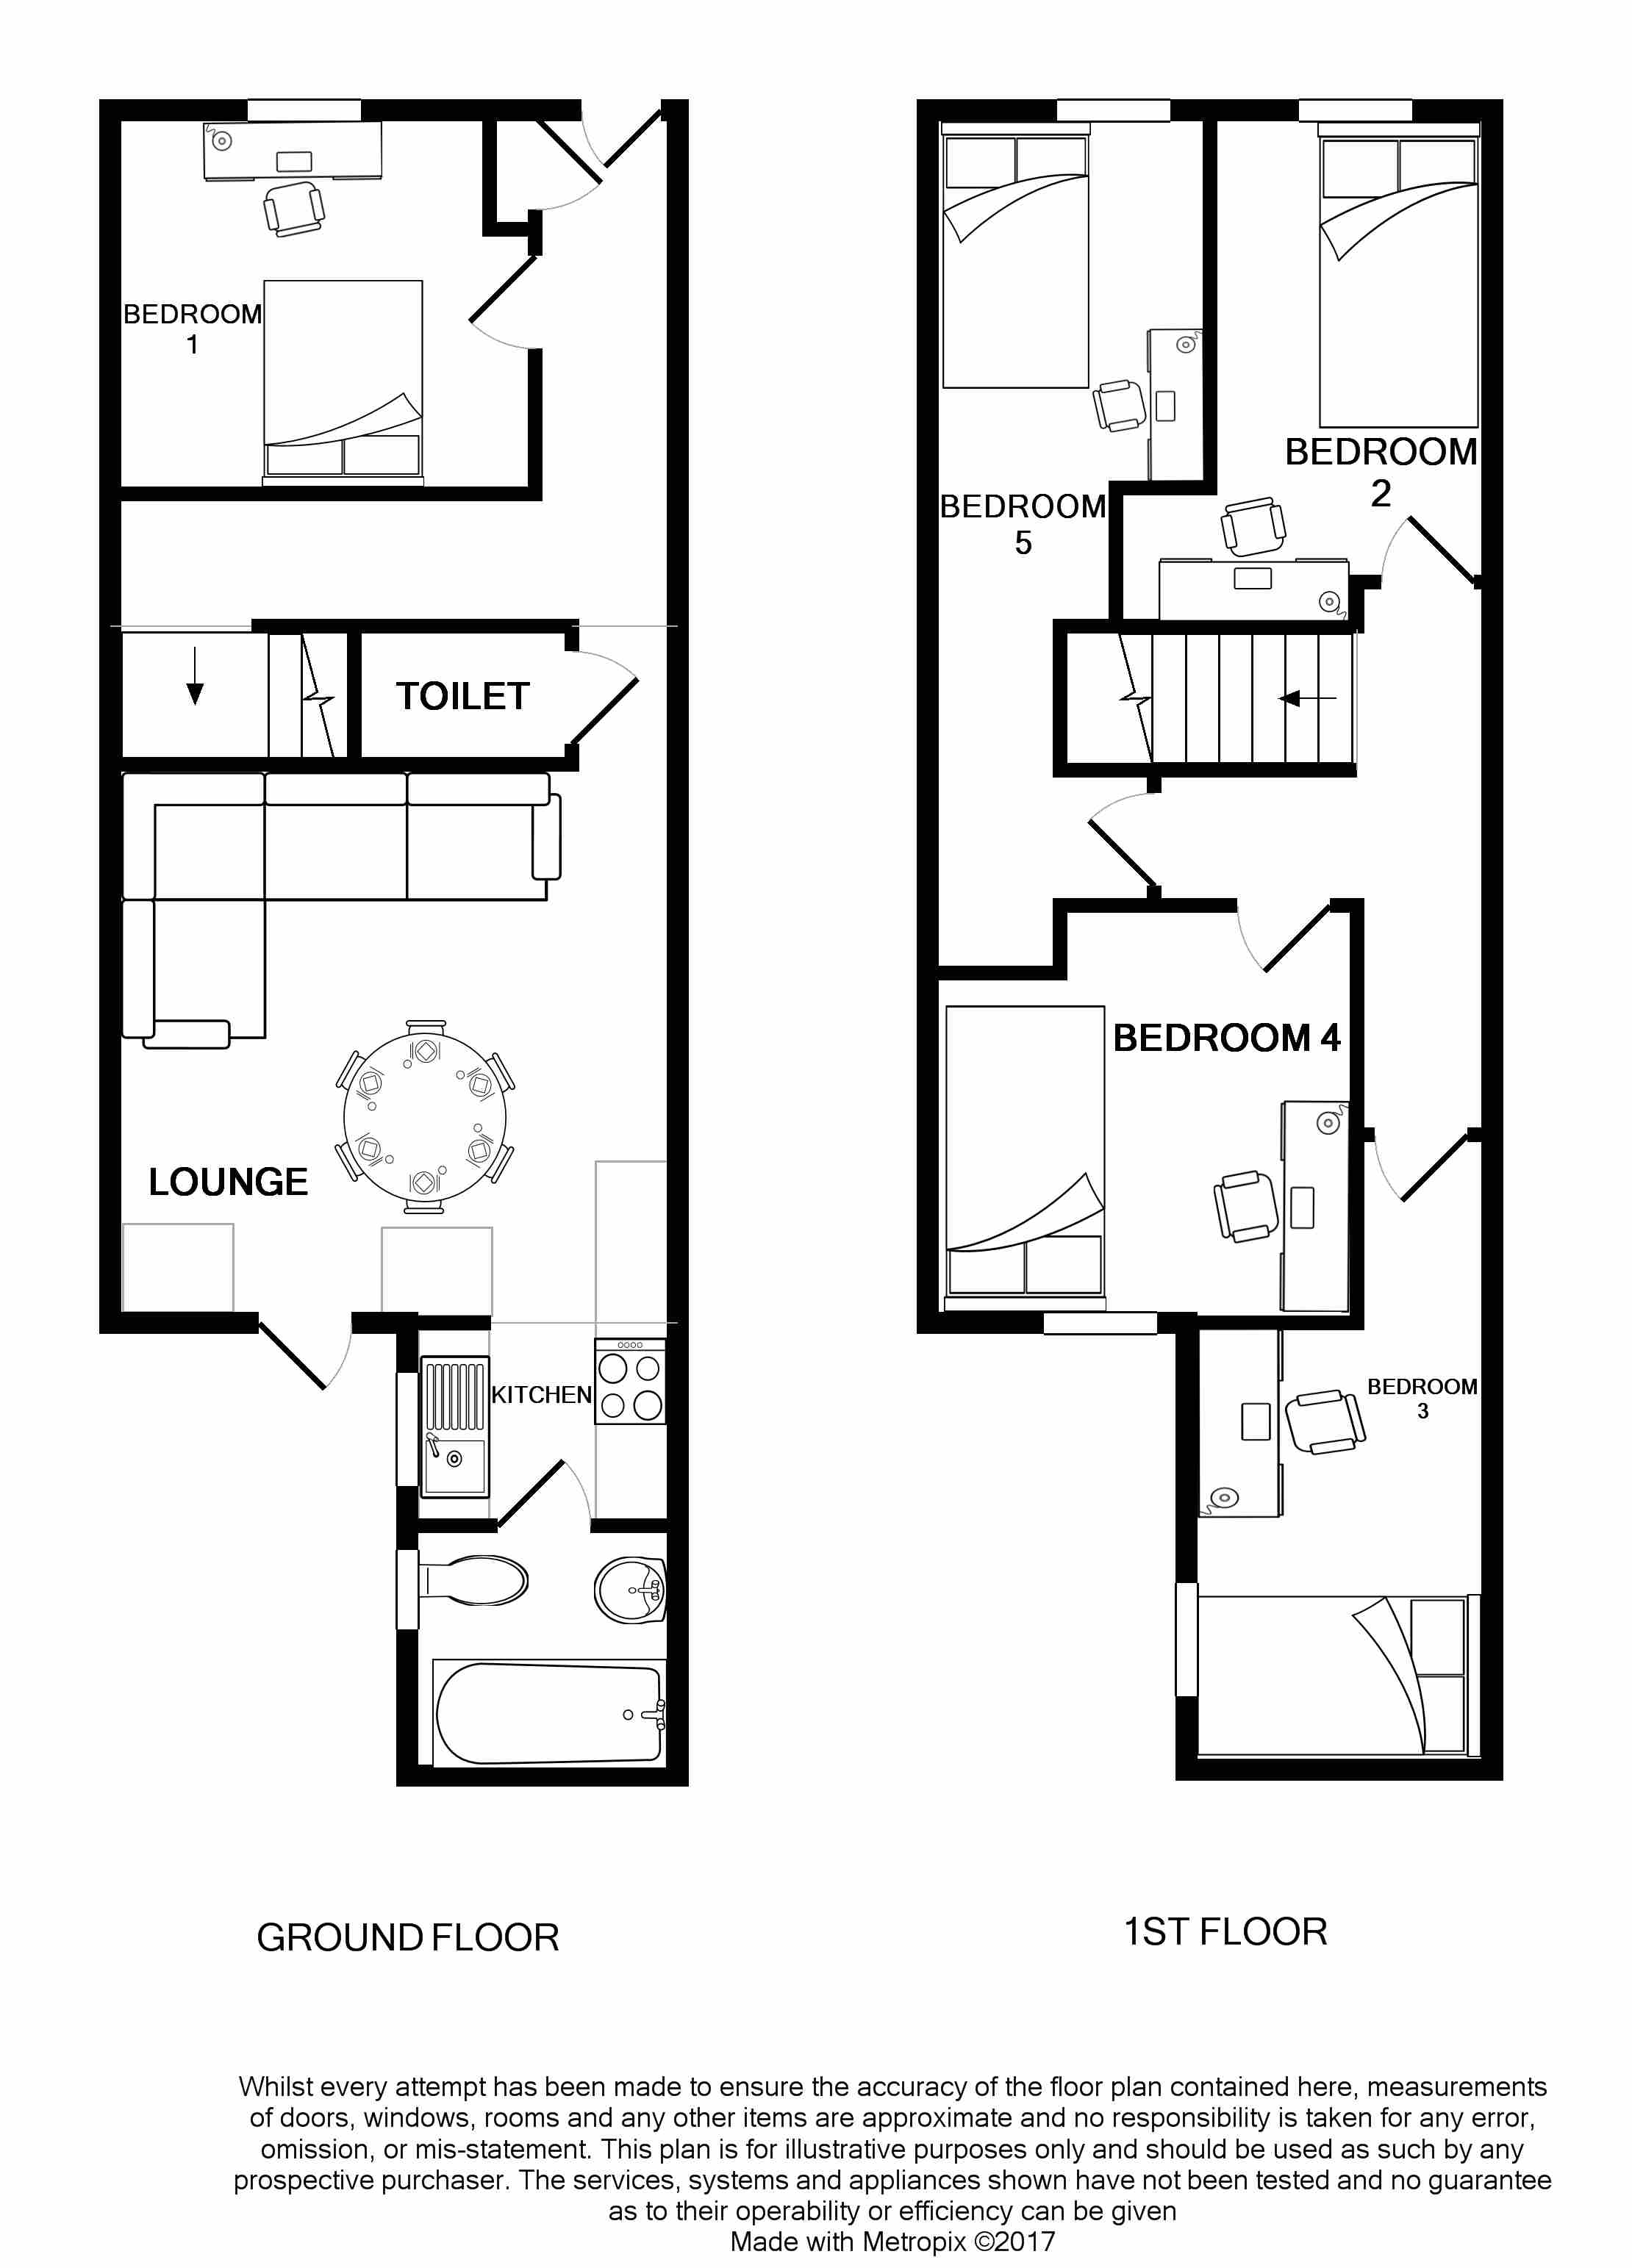 18 Cauldon Road Floorplans